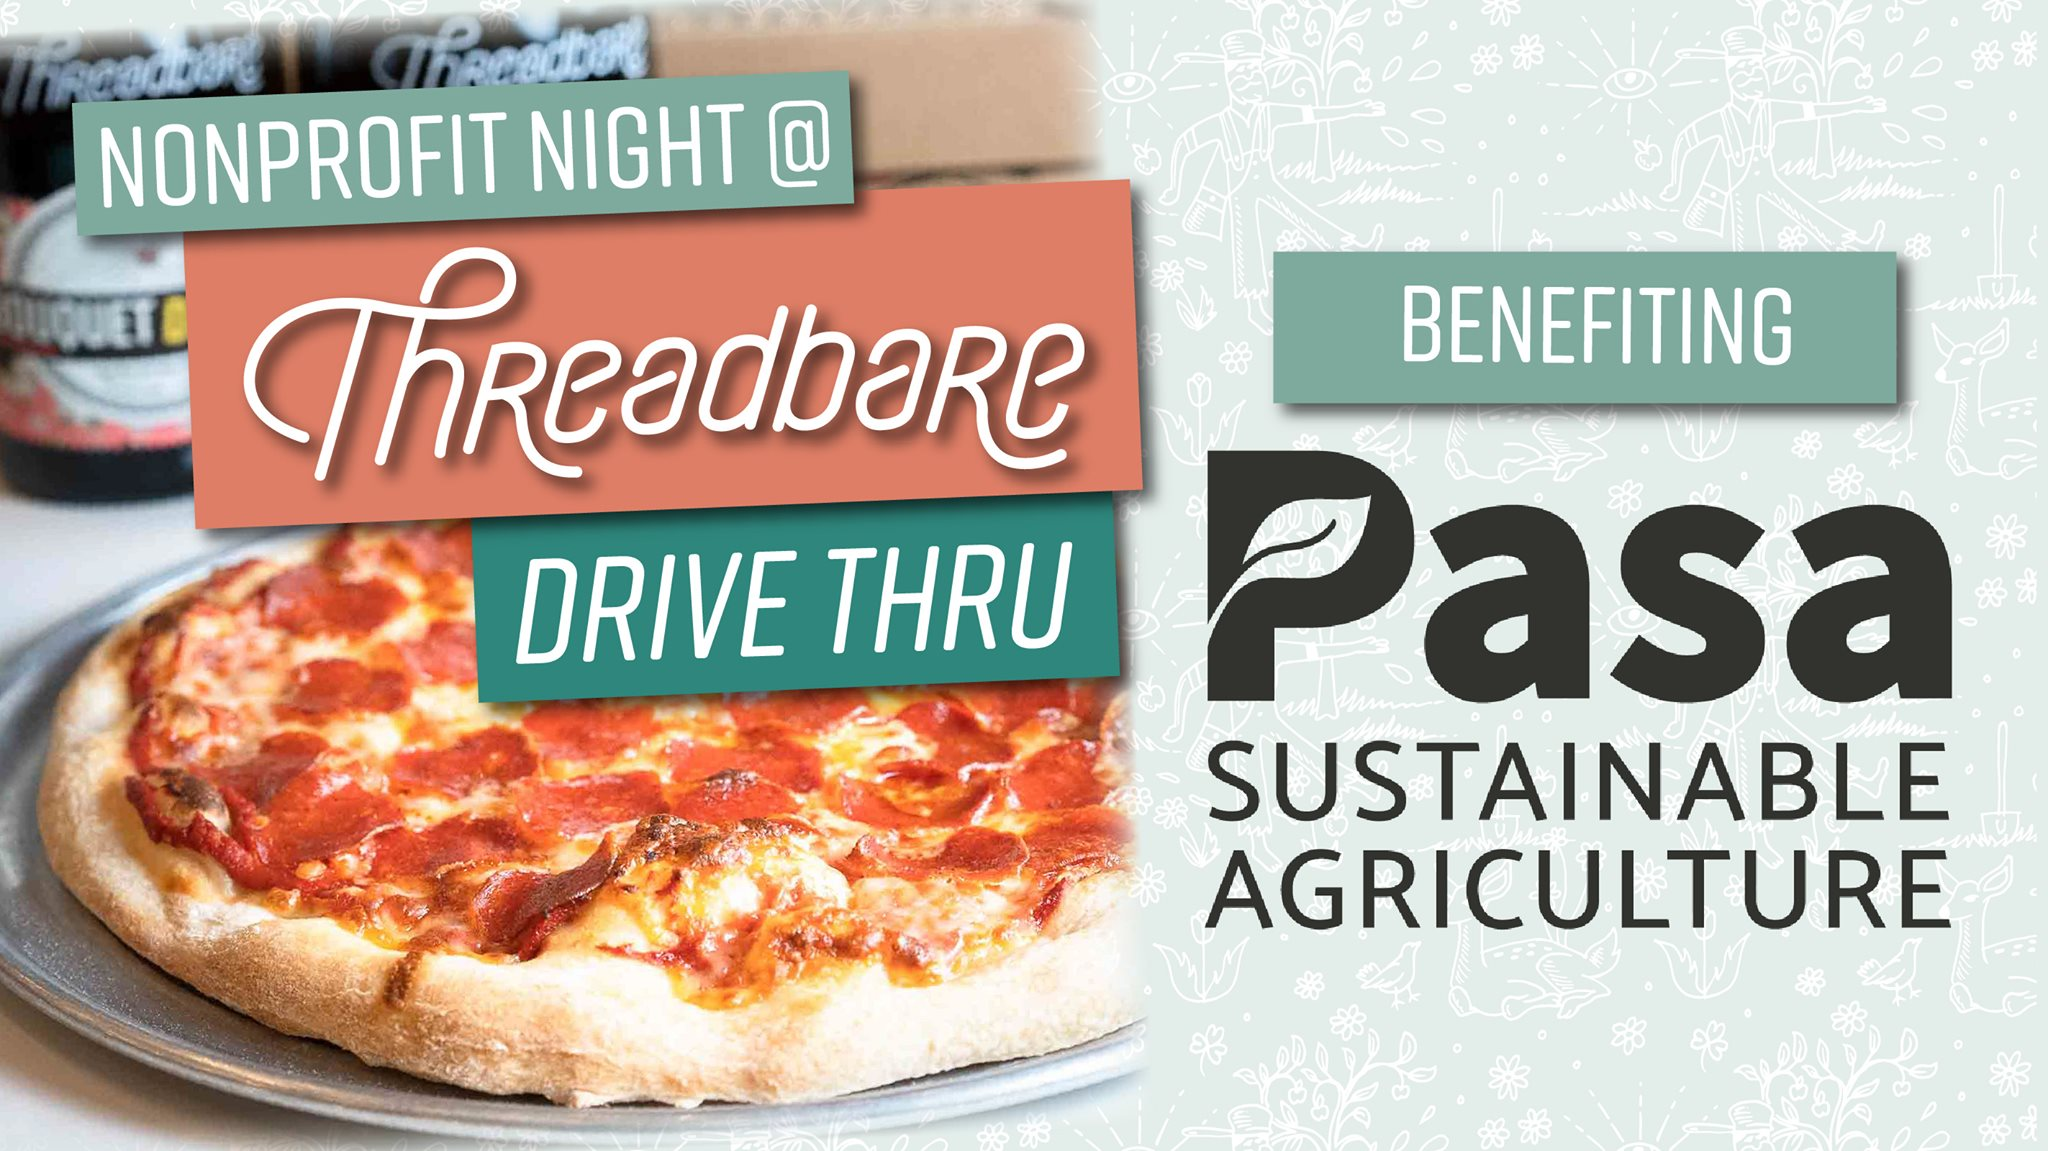 Non-profit Night at Threadbare Drive-Thru to Benefit PASA Sustainable Agriculture